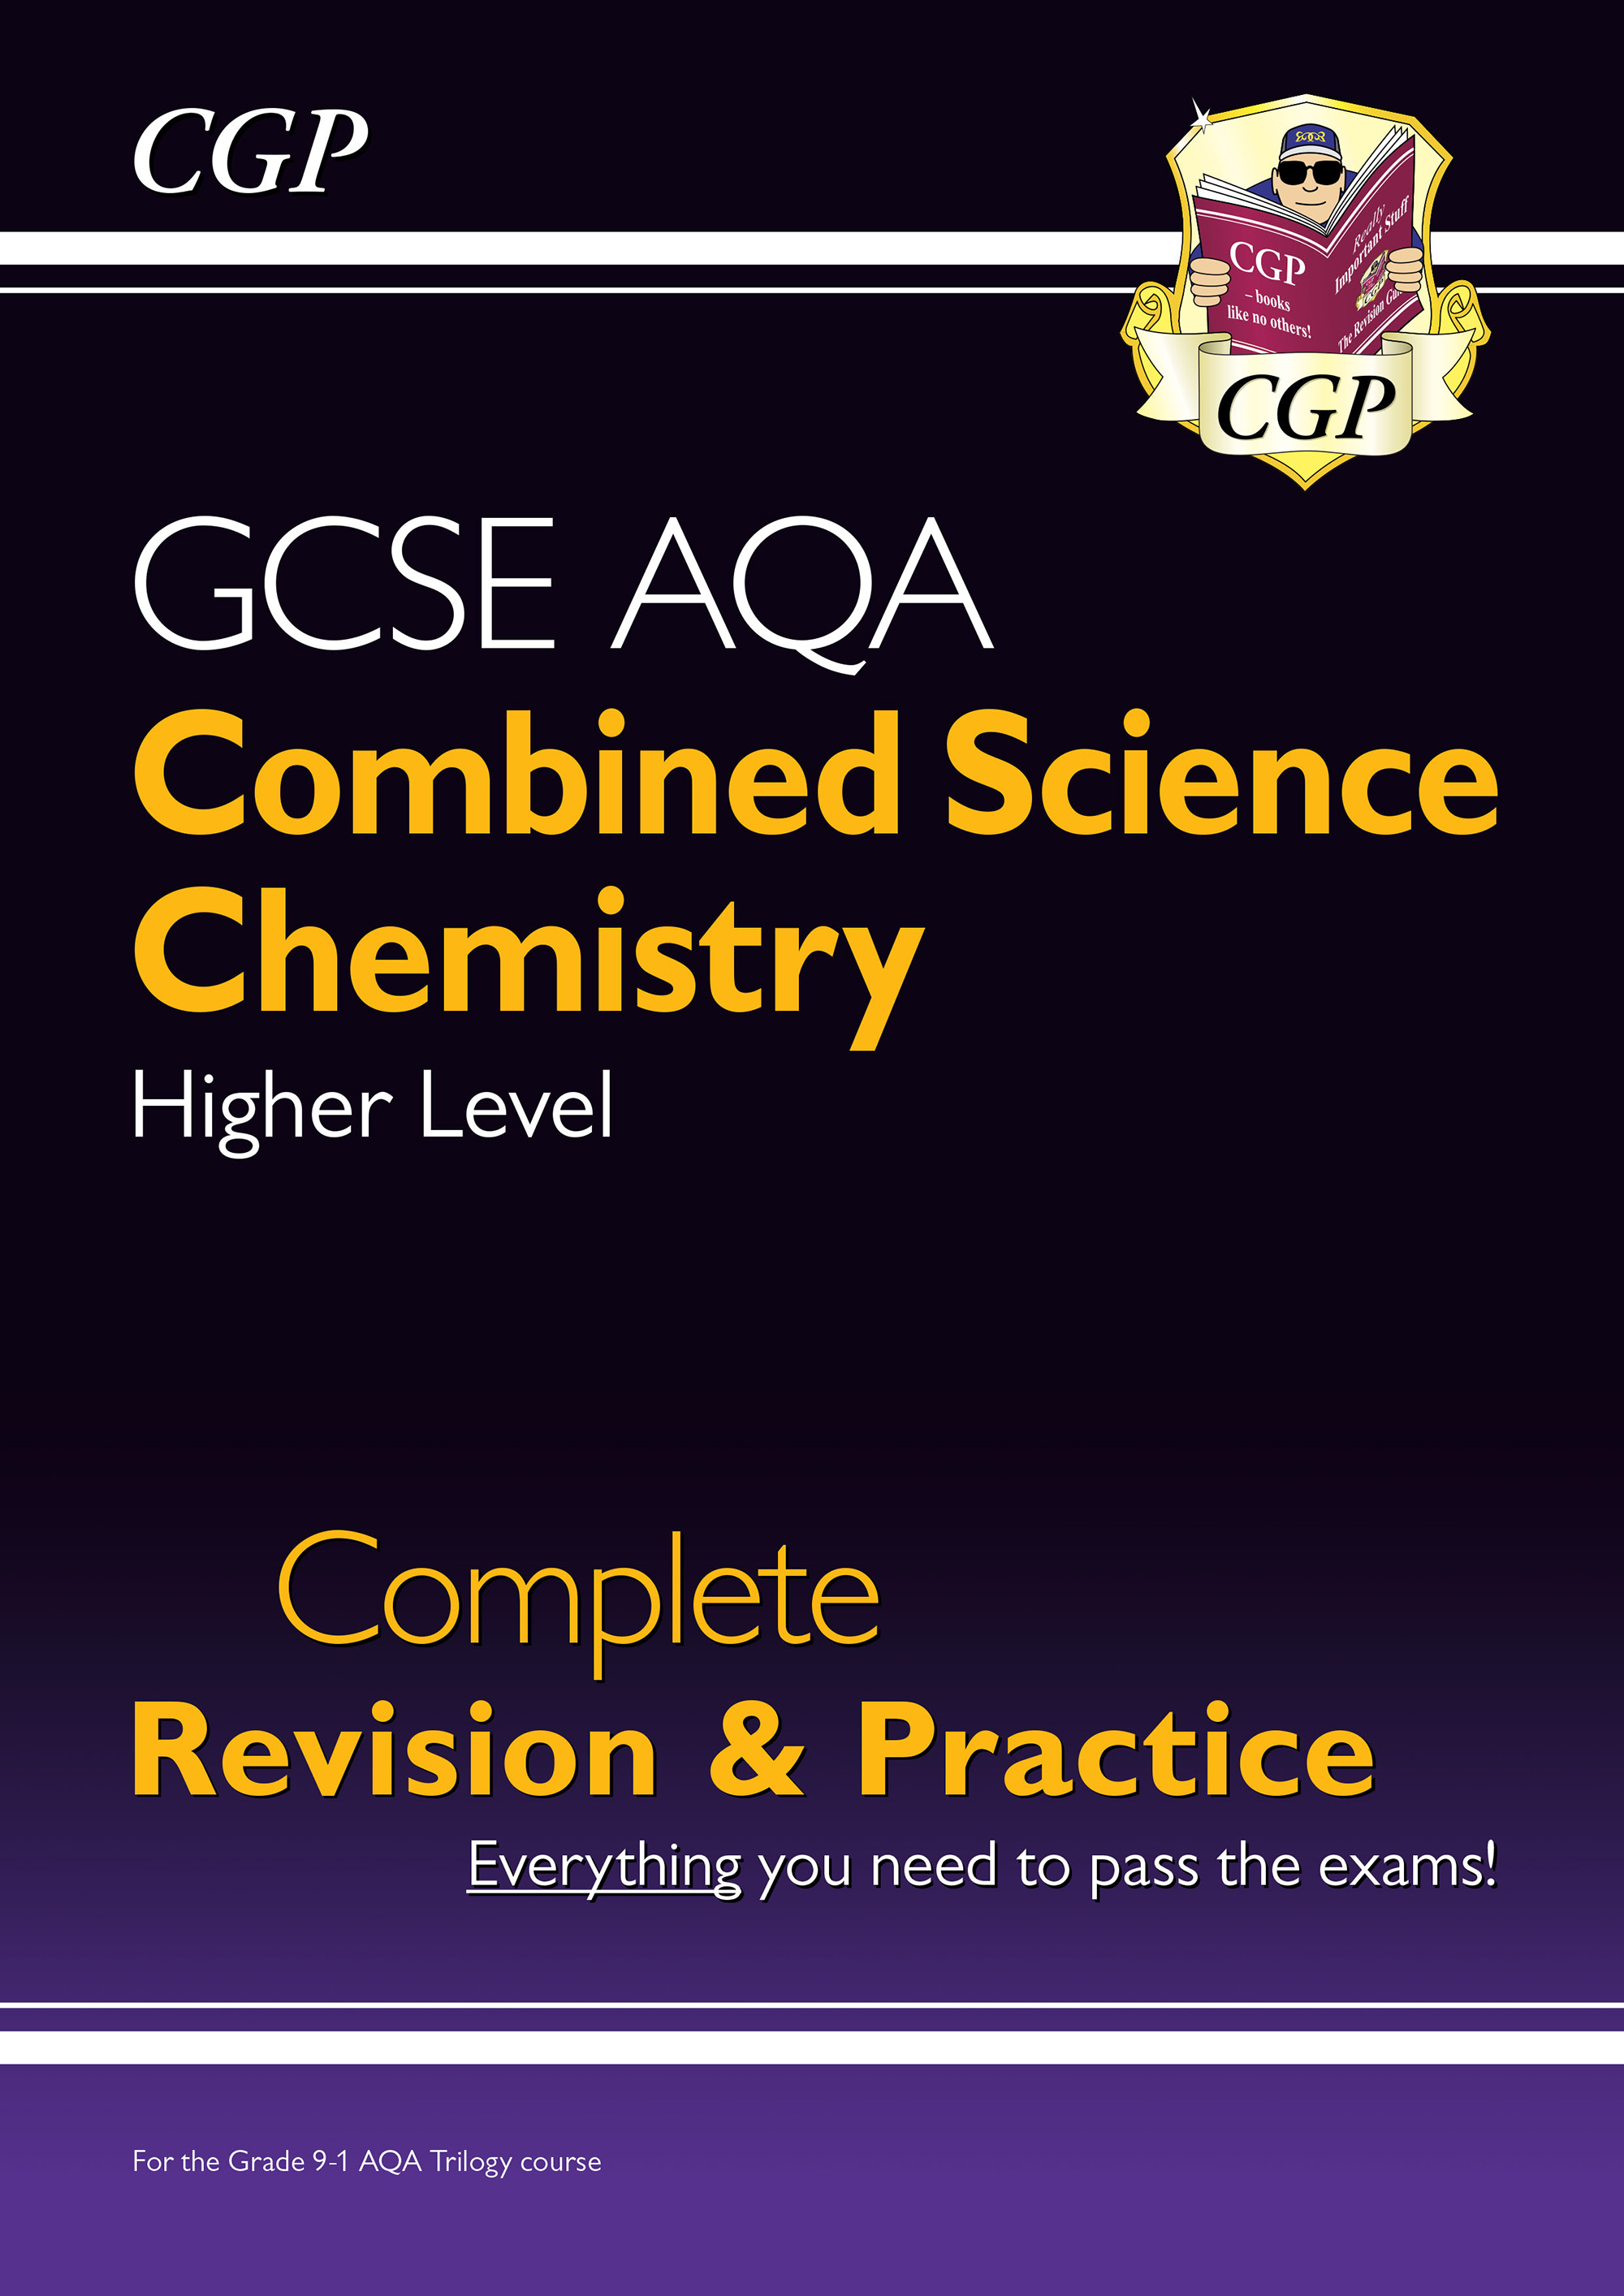 SCCAS41DK - New 9-1 GCSE Combined Science: Chemistry AQA Higher Complete Revision & Practice